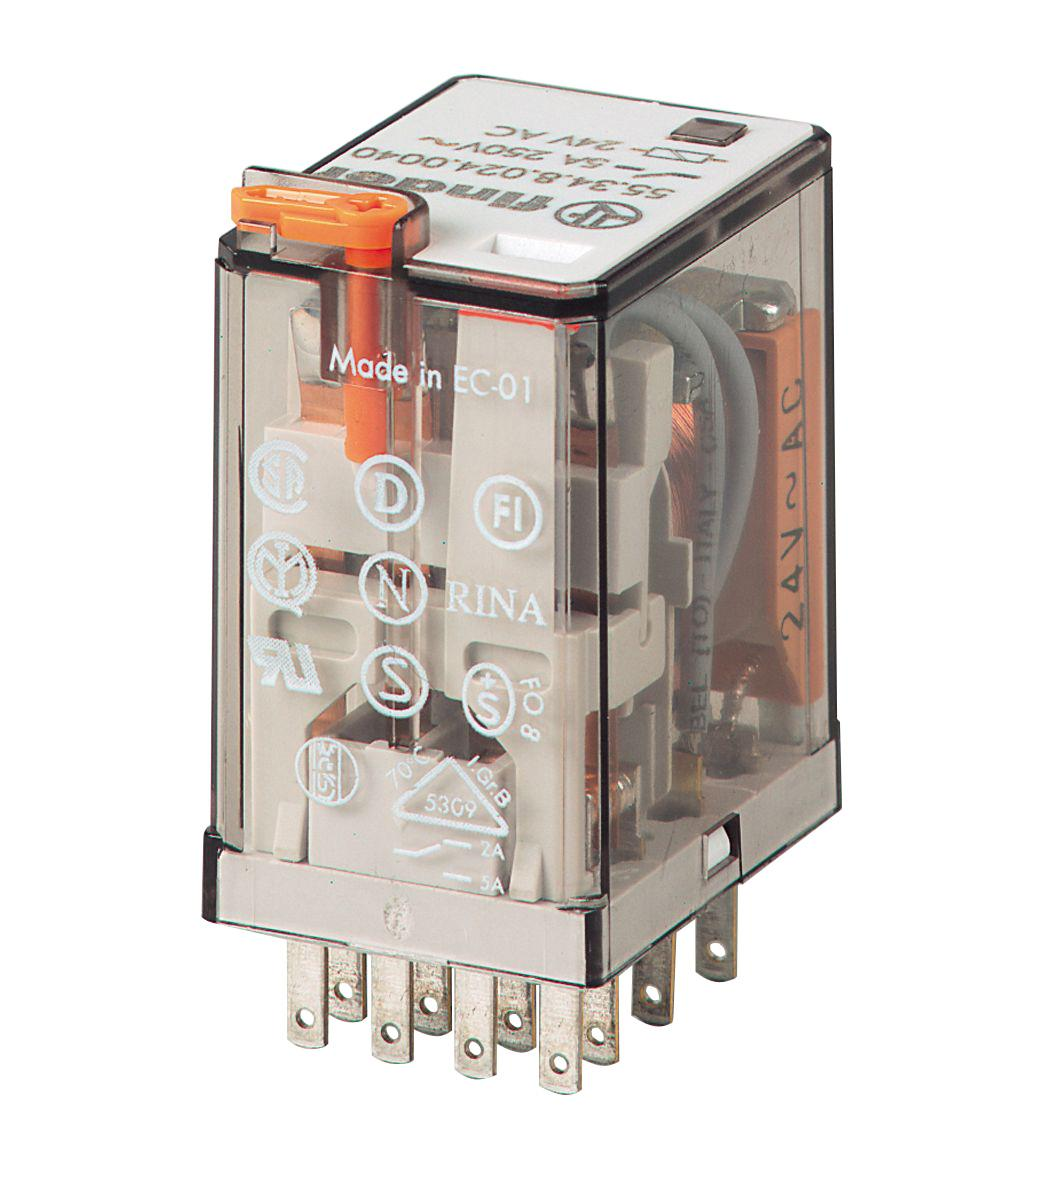 553482300040 Finder Sos Electronic Terminal Relay